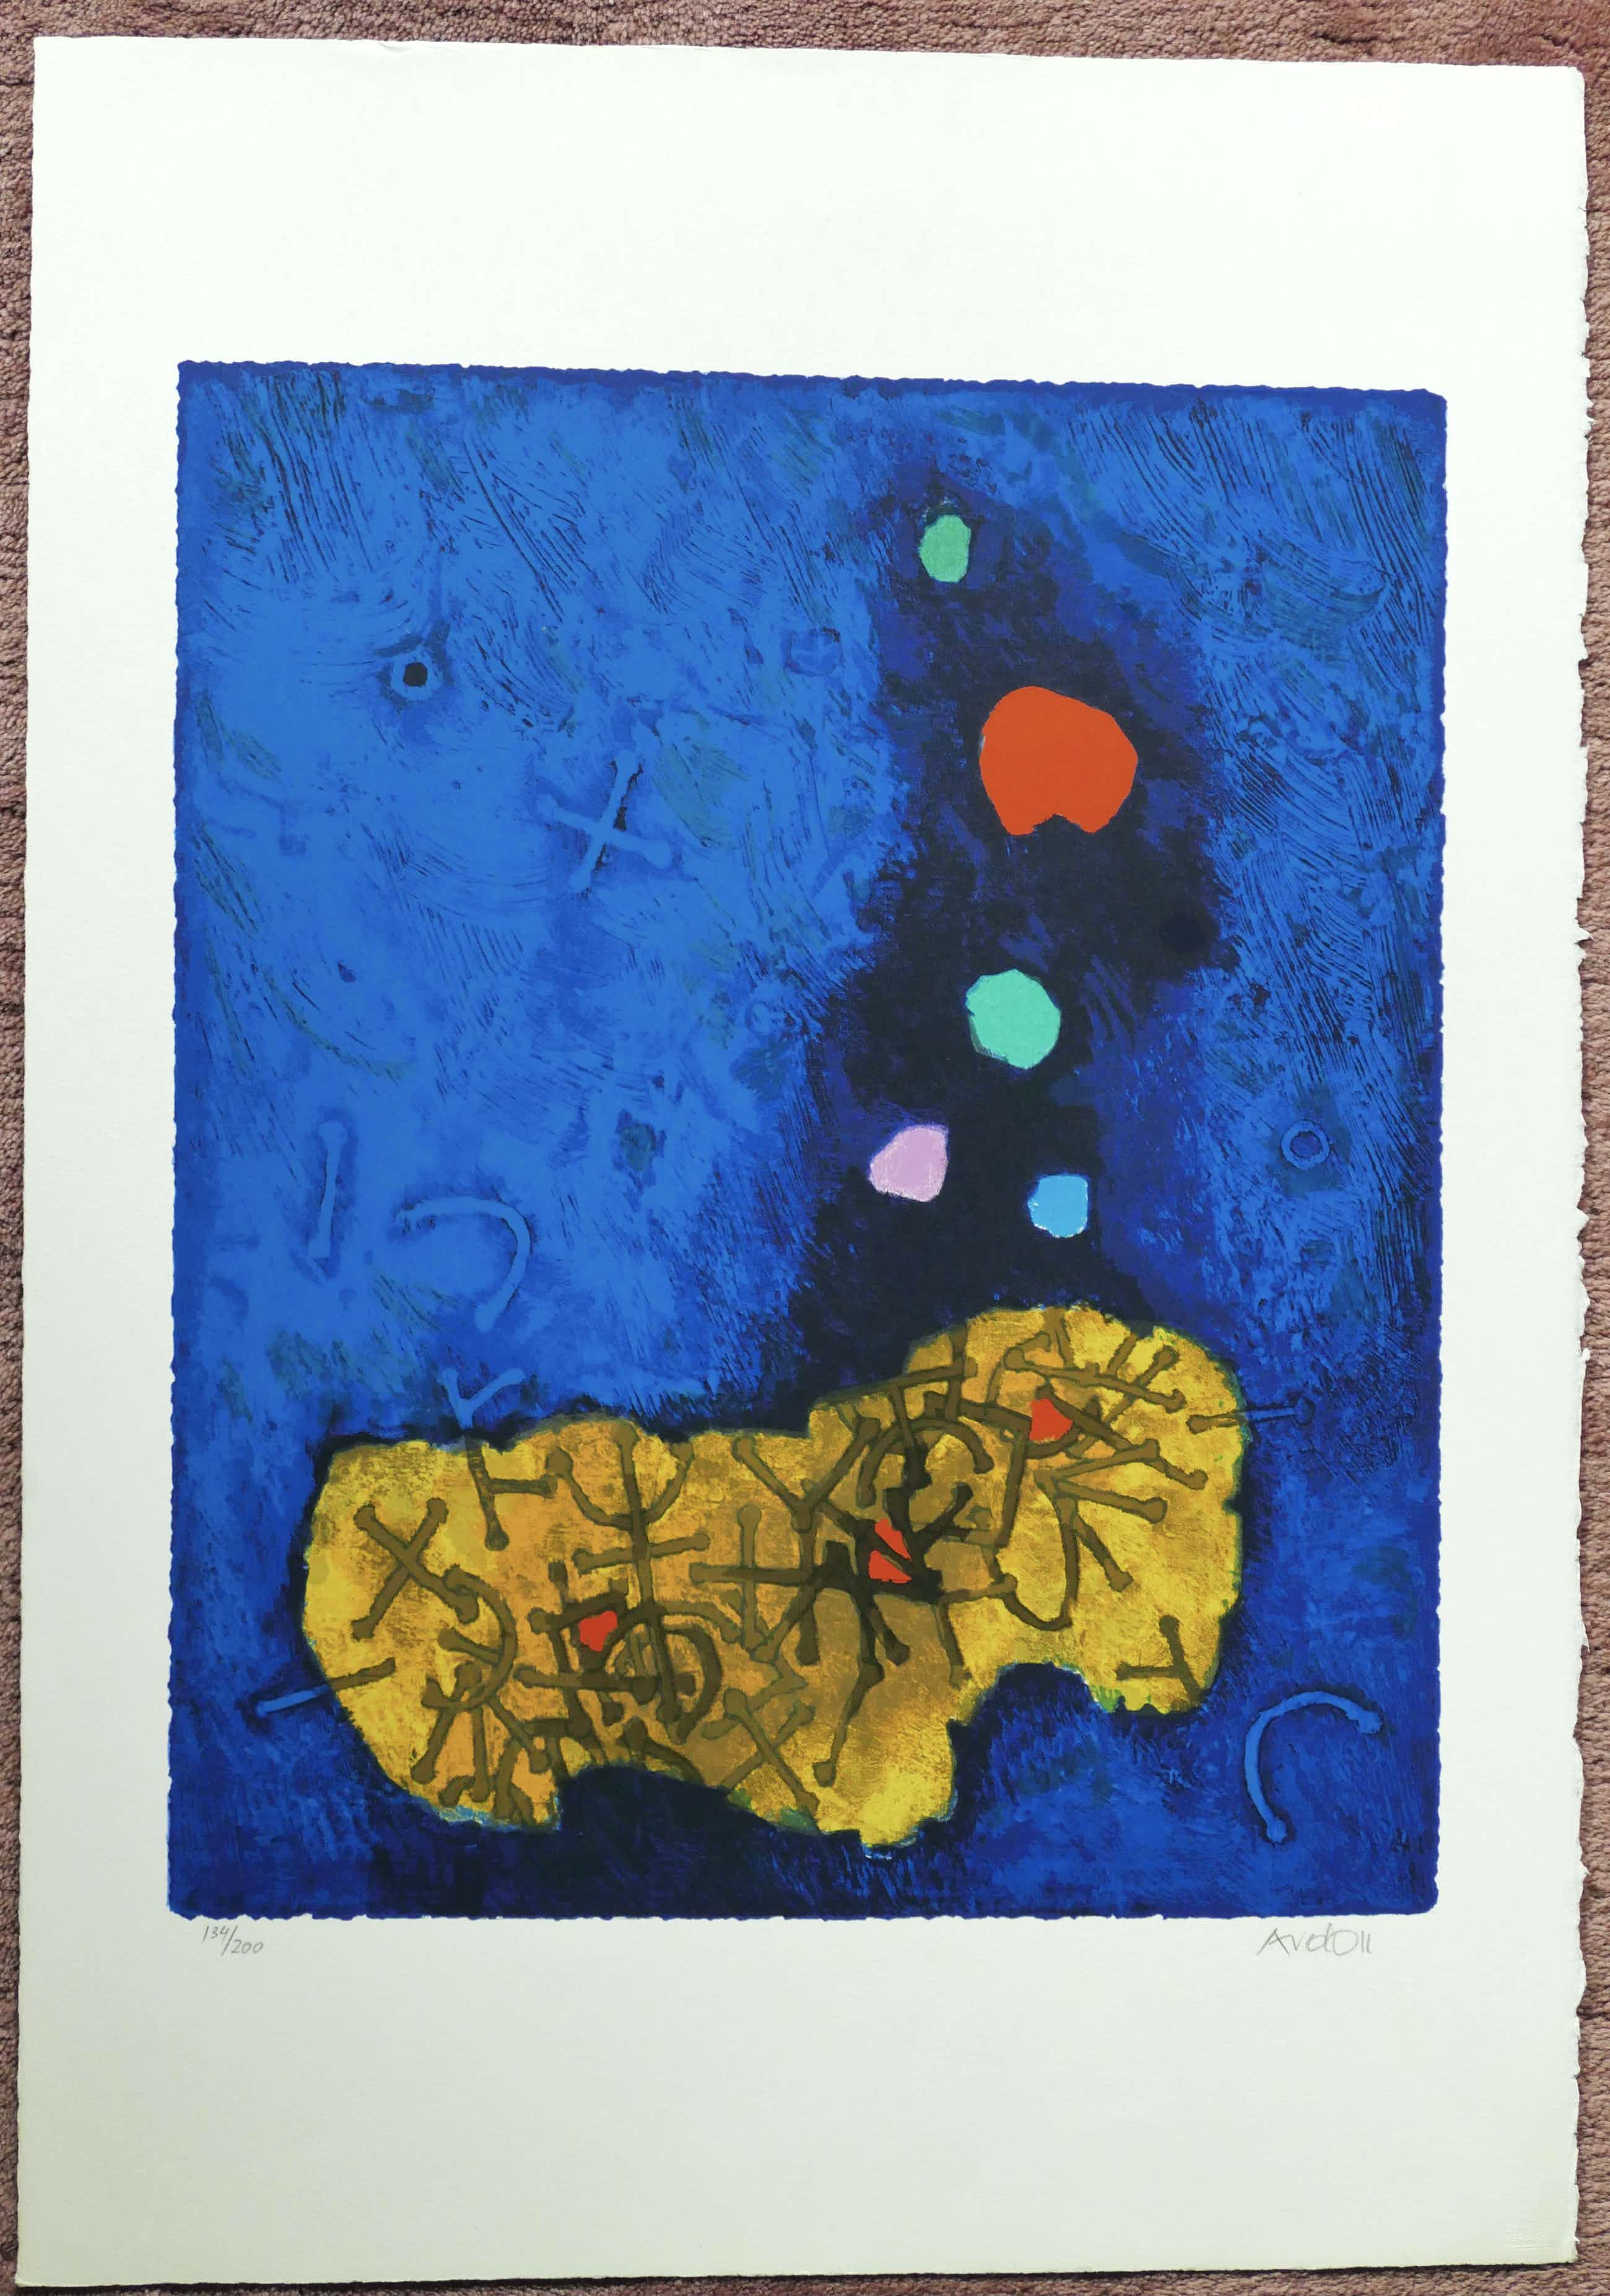 Mordecai Ardon - Signs from the past kopen? Bied vanaf 250!